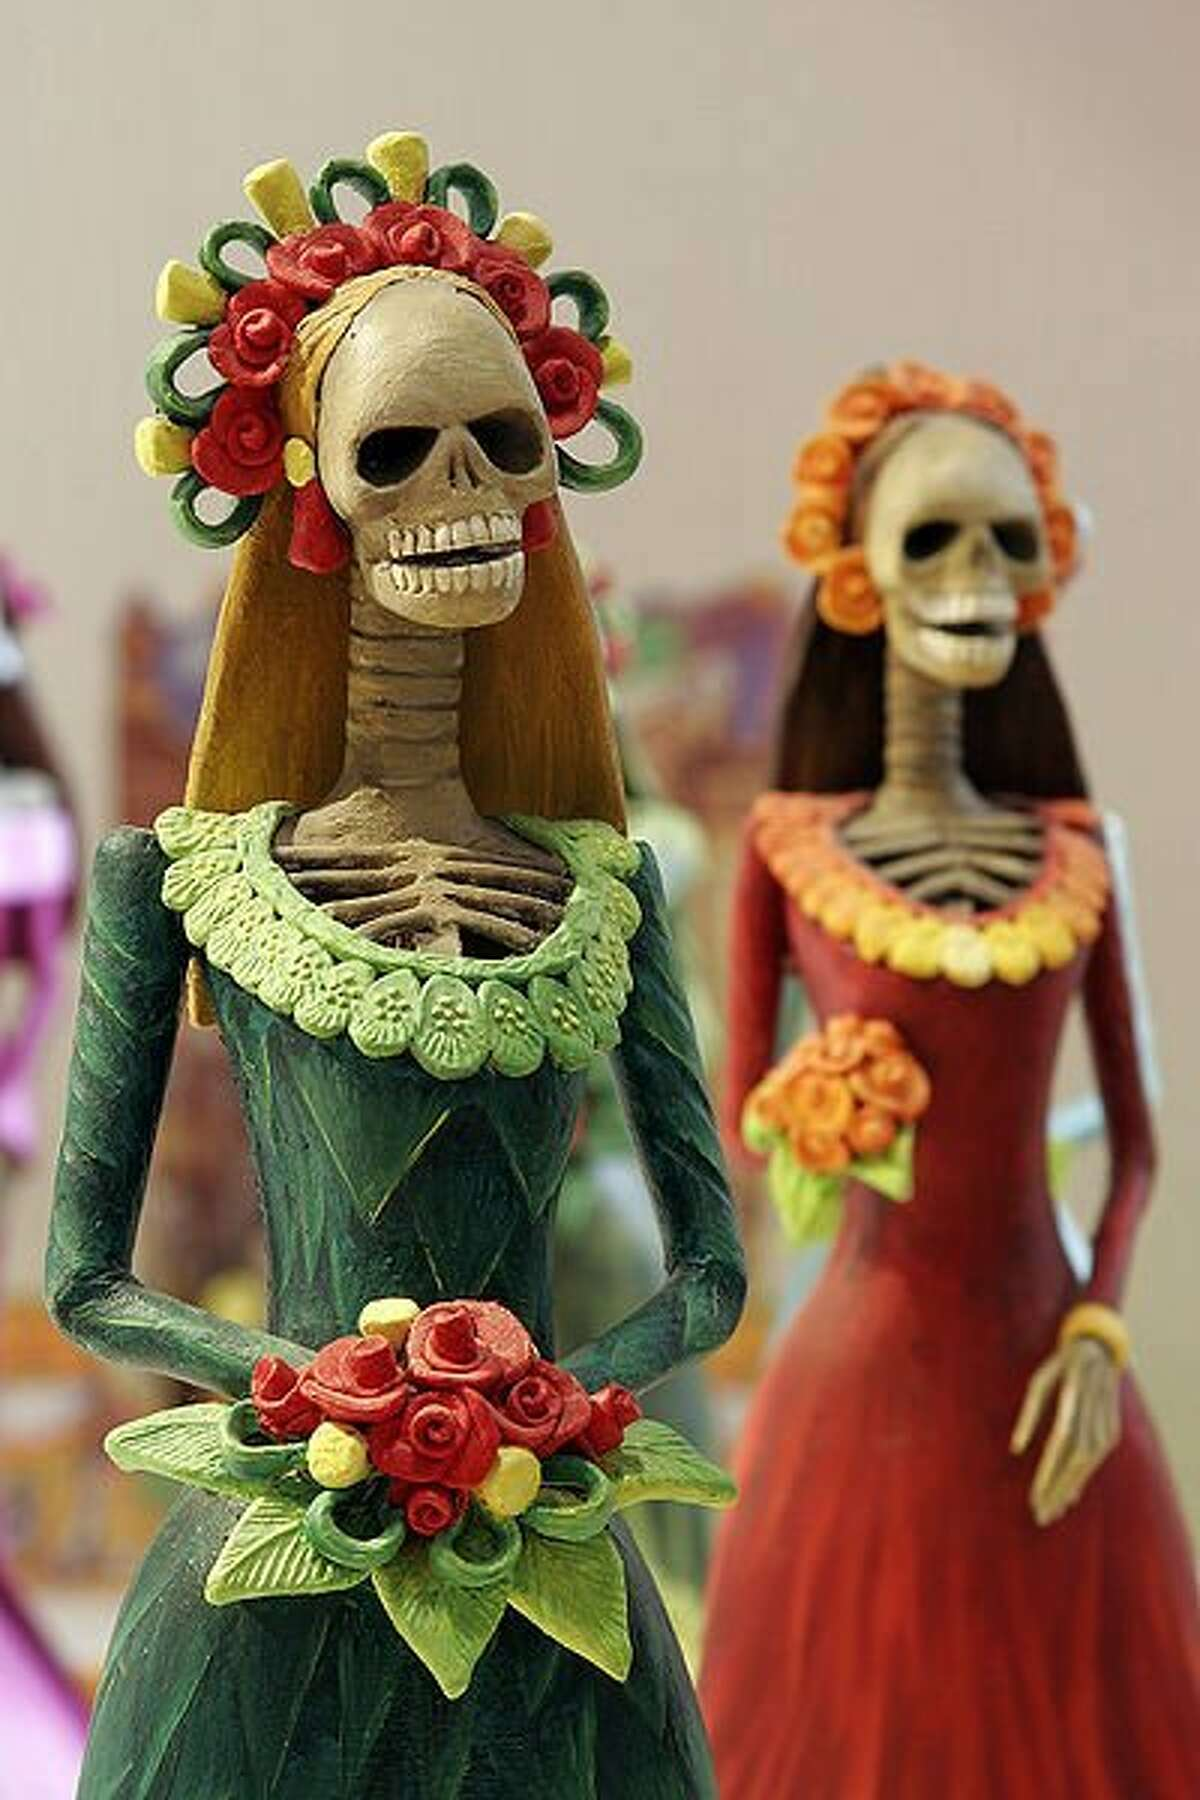 Elegantly dressed and often flirtatious, La Catrina has become a symbol Día de los Muertos and the Mexican willingness to laugh at death.